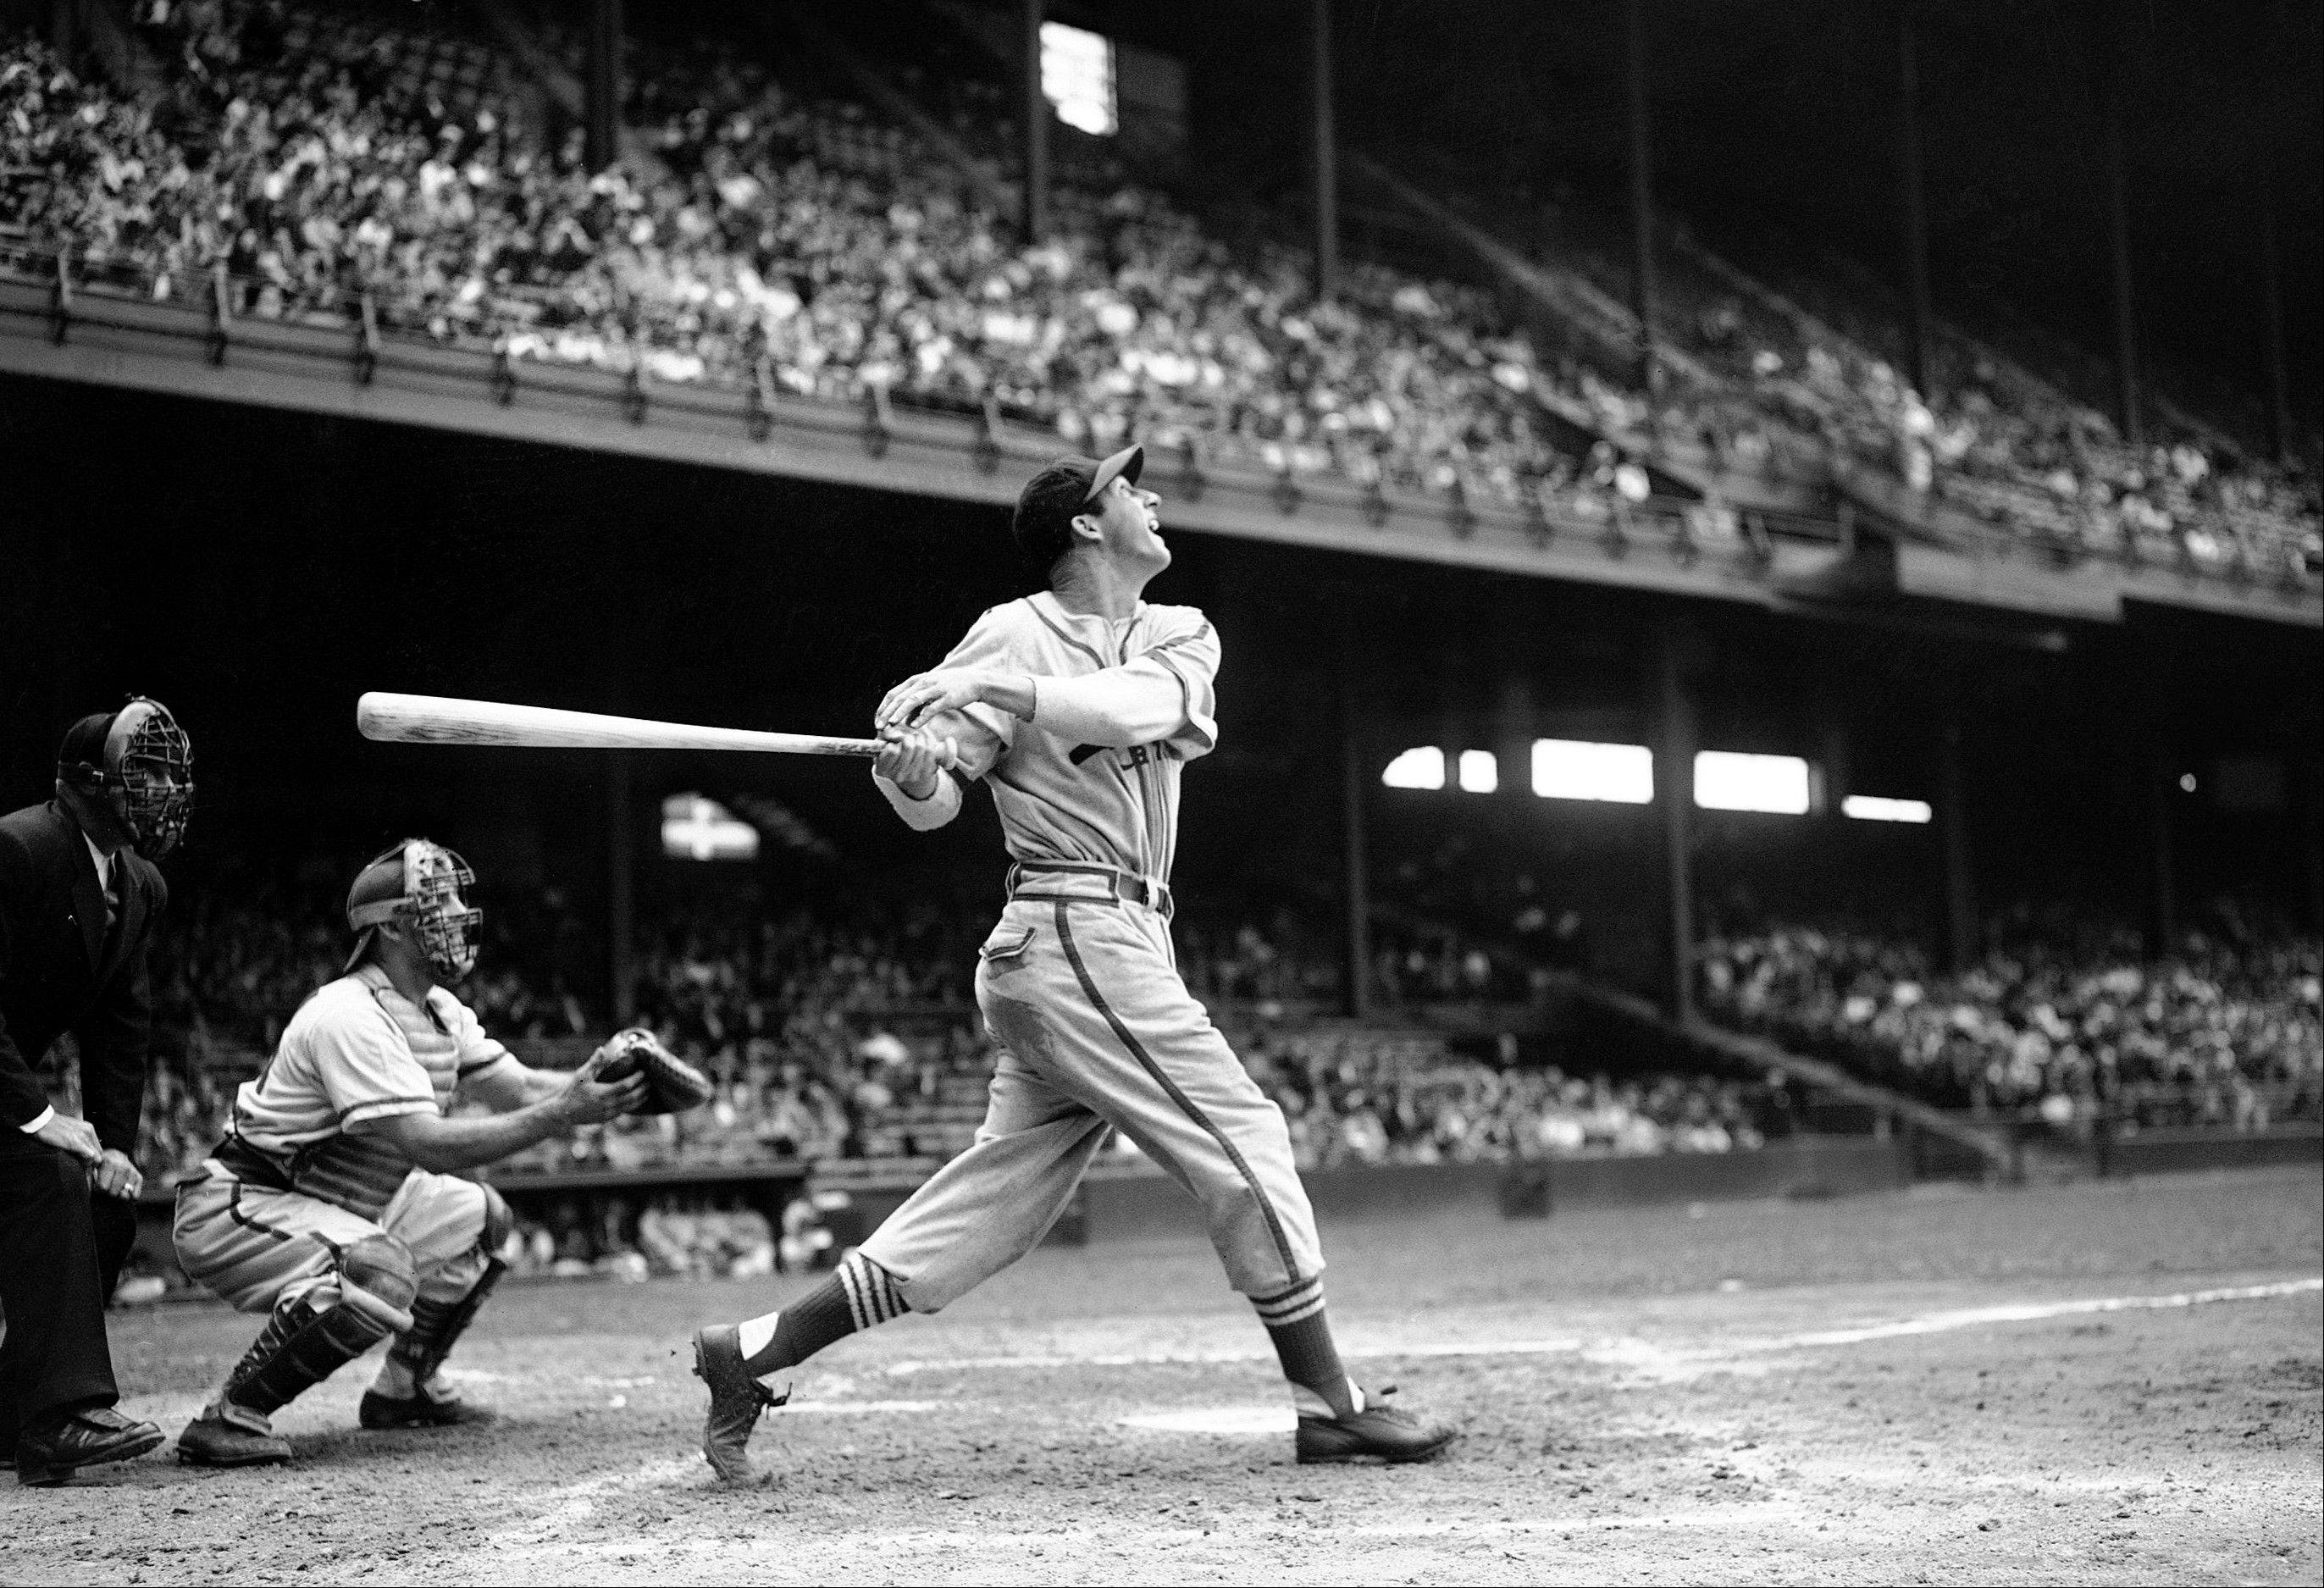 In this May 22, 1946 file photo, St. Louis Cardinals� Stan Musial bats against the Philadelphia Phillies during a baseball game at Shibe Park in Philadelphia. Musial, one of baseball�s greatest hitters and a Hall of Famer with the Cardinals for more than two decades, died Saturday, Jan 19, 2013. He was 92.